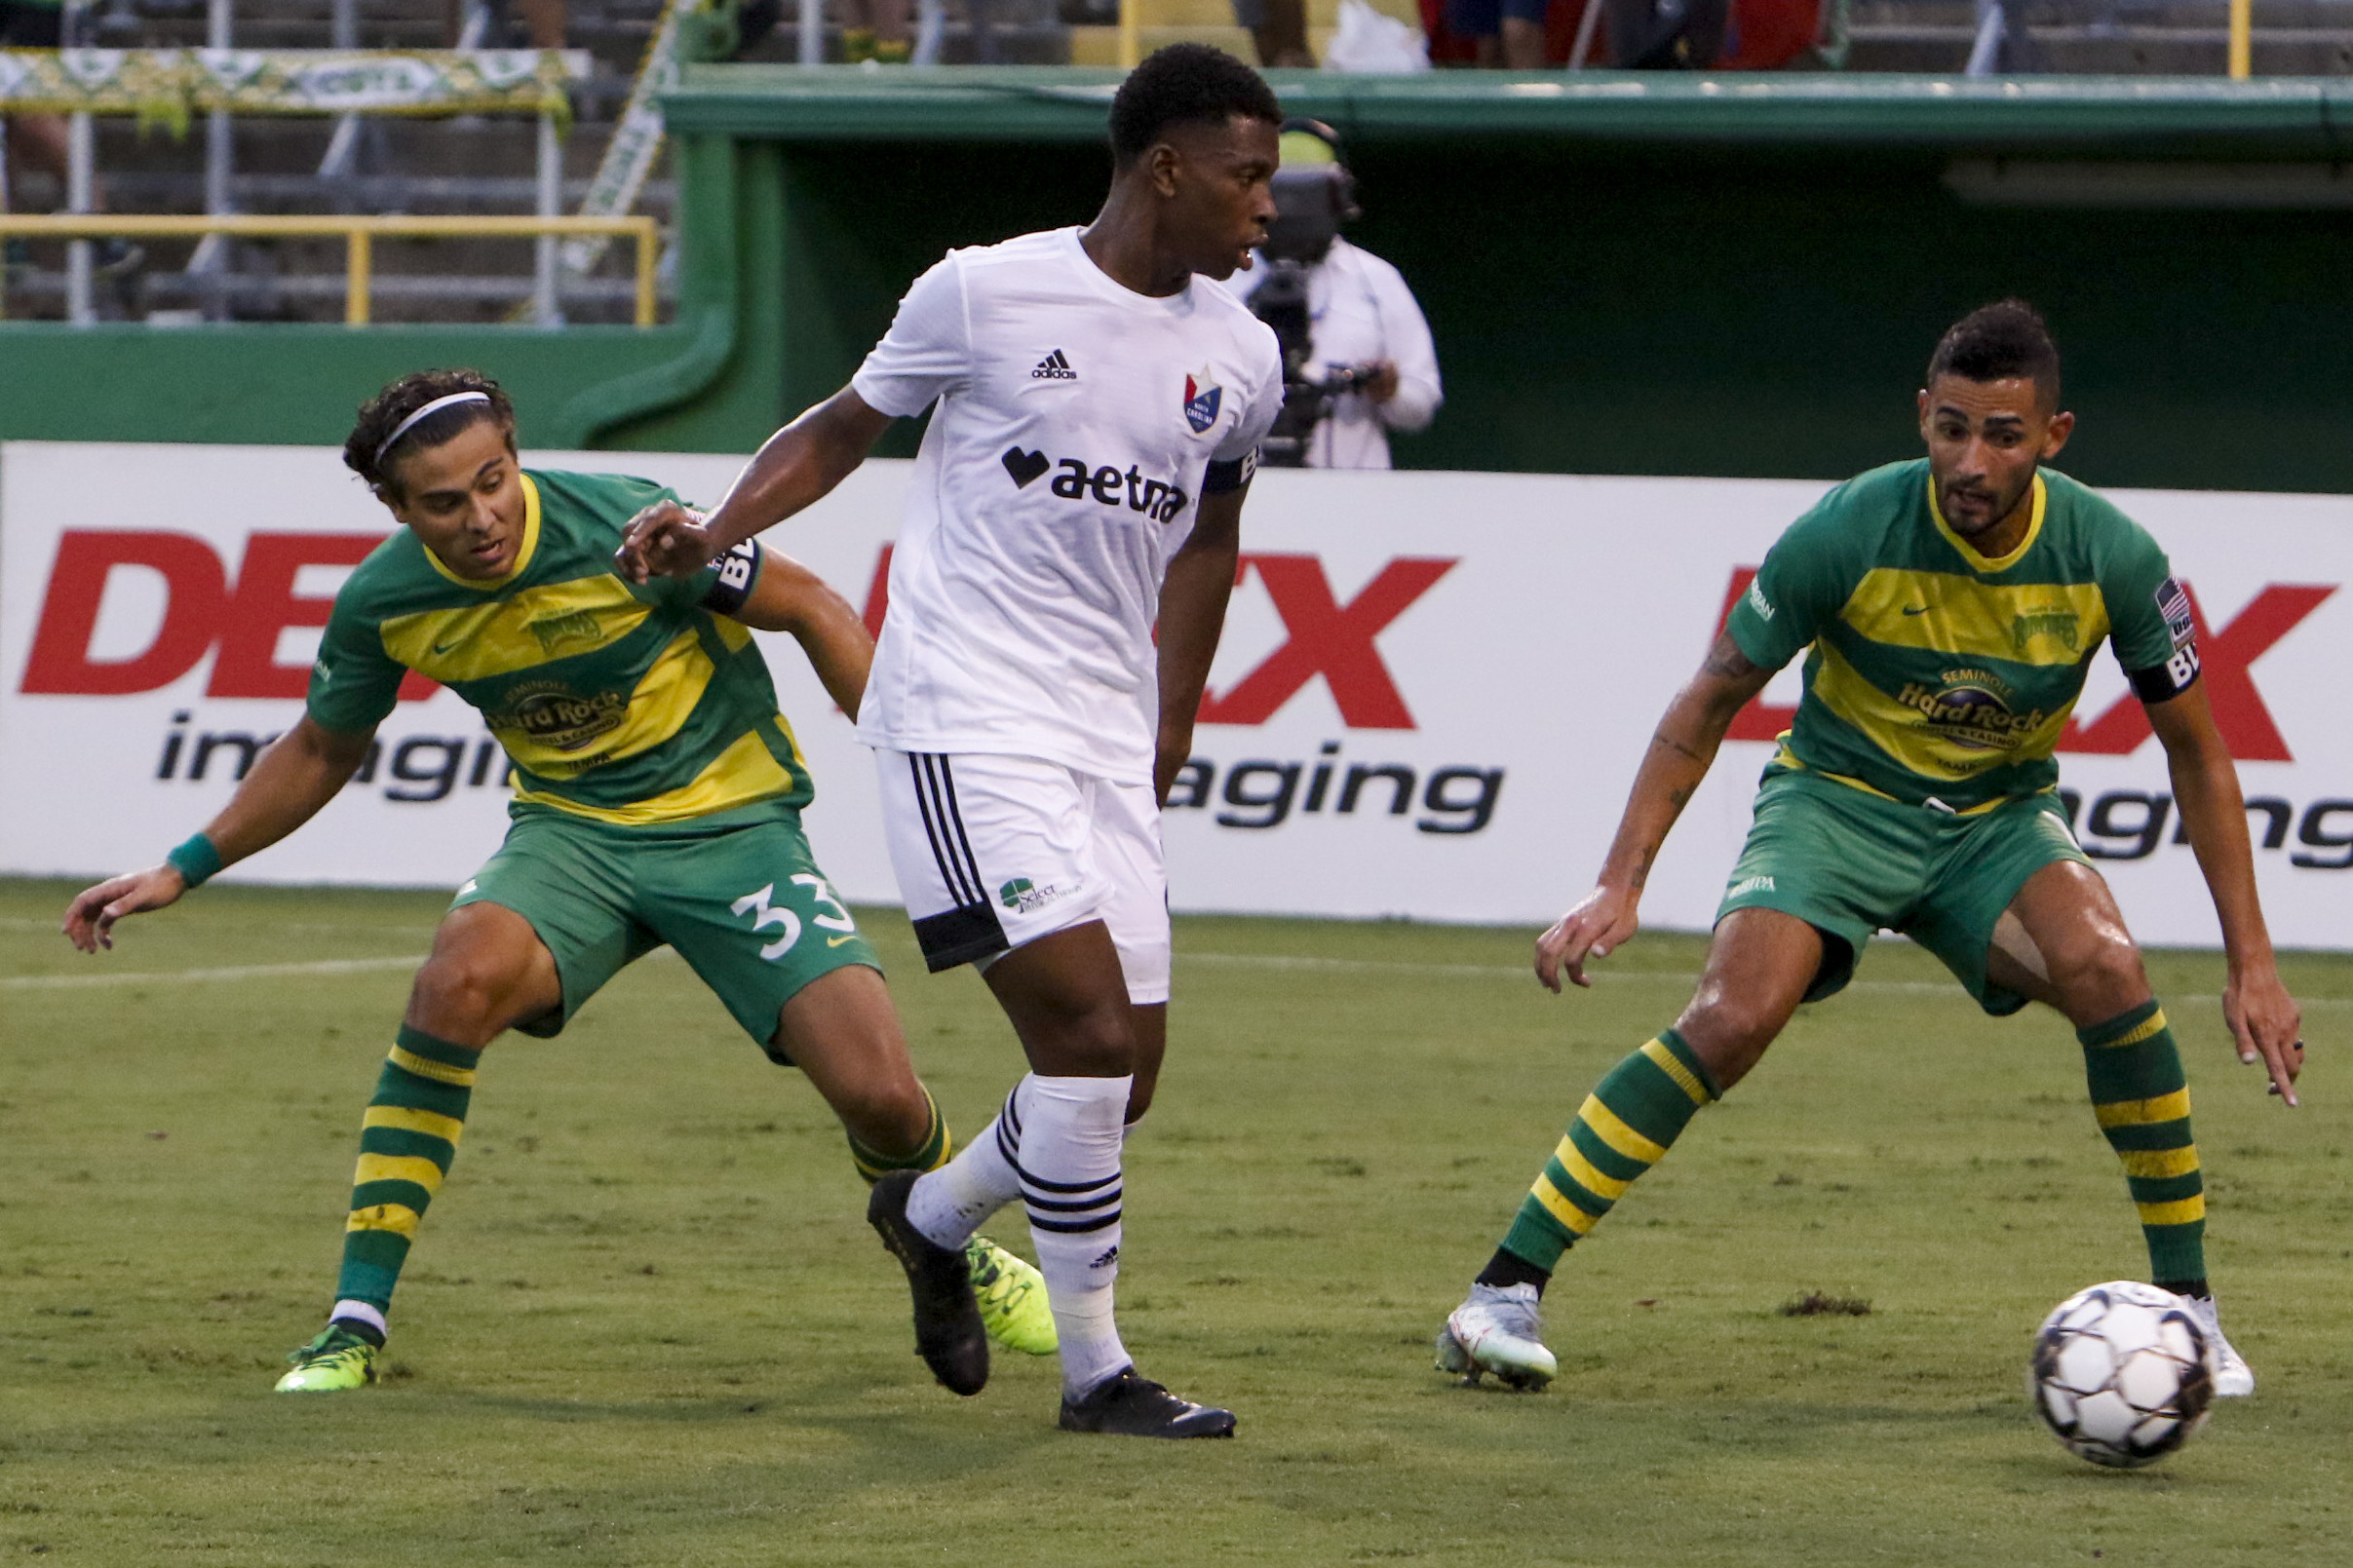 tampa bay rowdies rally for draw at birmingham stay undefeated https www tampabay com sports rowdies 2020 07 25 tampa bay rowdies rally for draw at birmingham stay undefeated